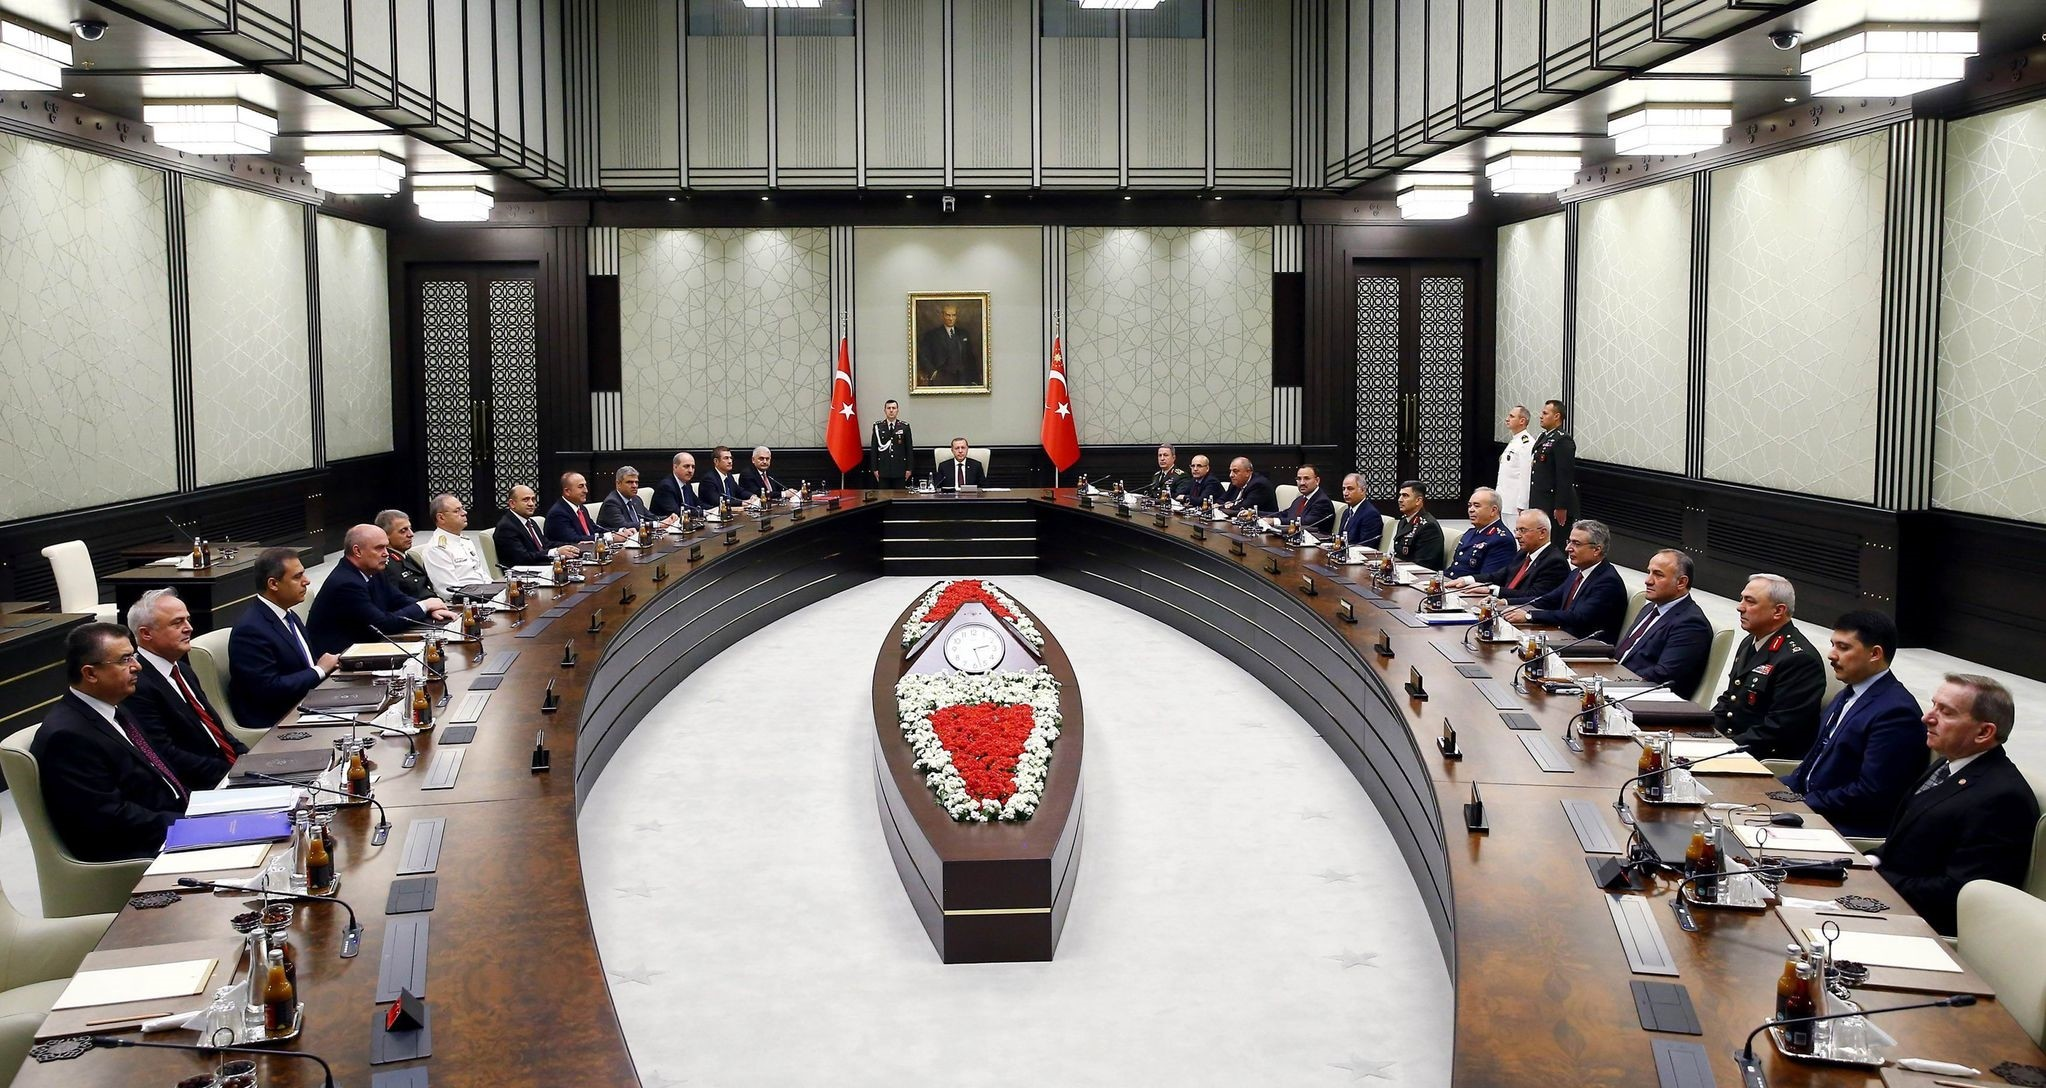 This handout photo released by the Turkish Presidential Press Office on May 26, 2016 shows Turkish President Recep Tayyip Erdogan (C) chairing a meeting of the National Security Council (MGK) at the Presidential Palace in Ankara. (AFP Photo)